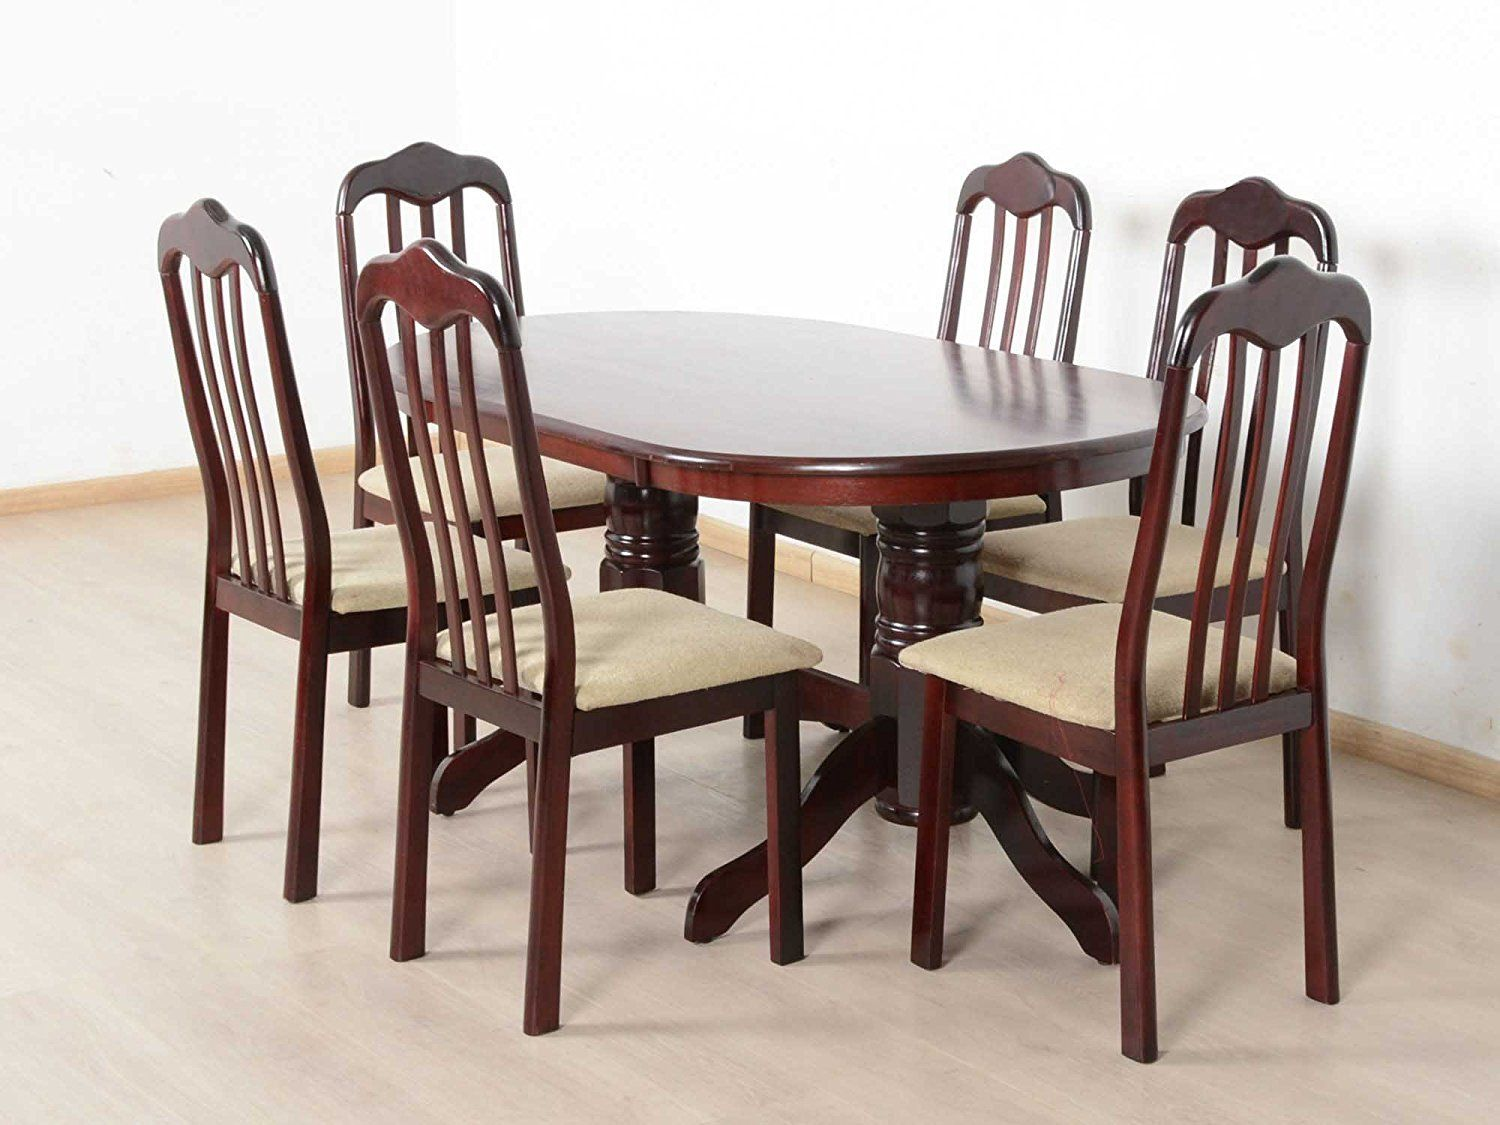 T2A Livez Six Seater Dining Table Set - Oval Shaped ...